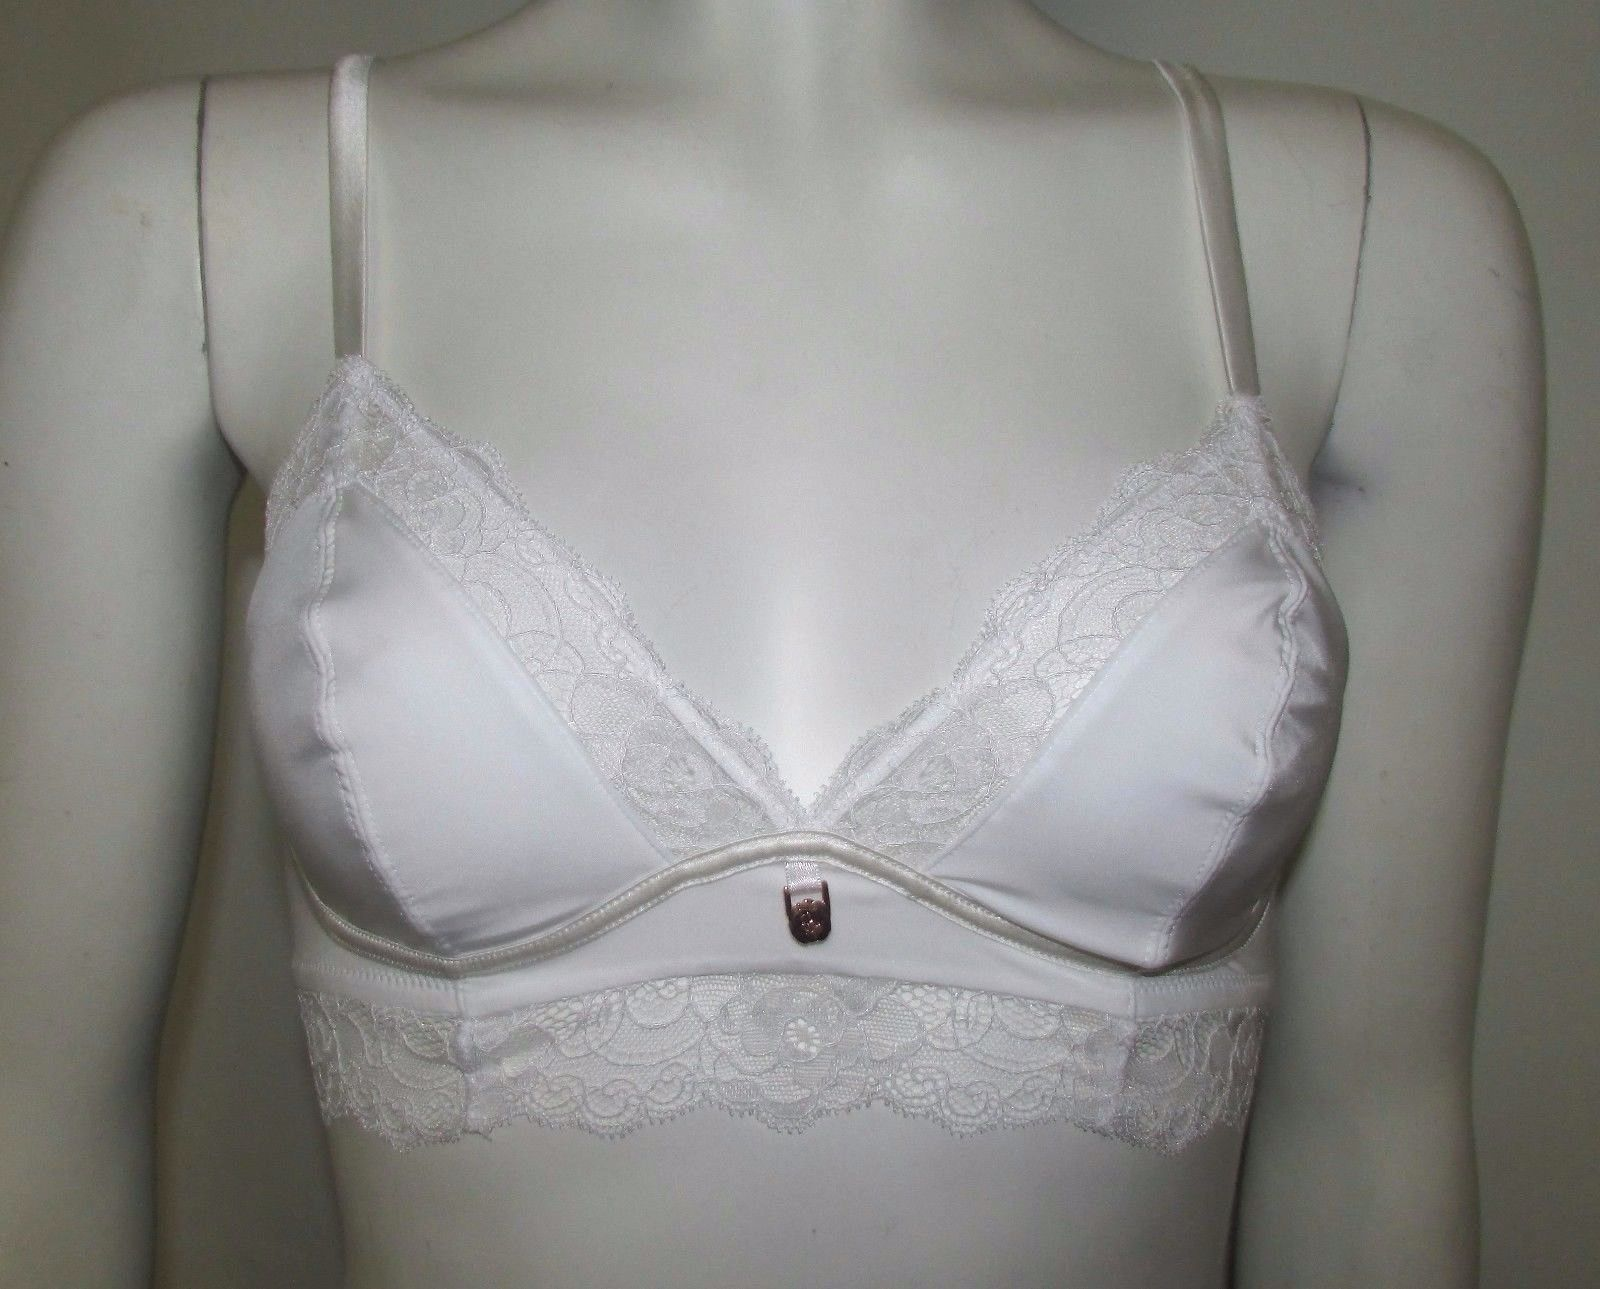 BRALET M/&S AUTOGRAPH WHITE WITH SILK TRIMS /& FRENCH DESIGNED ROSE LACE NON WIRED